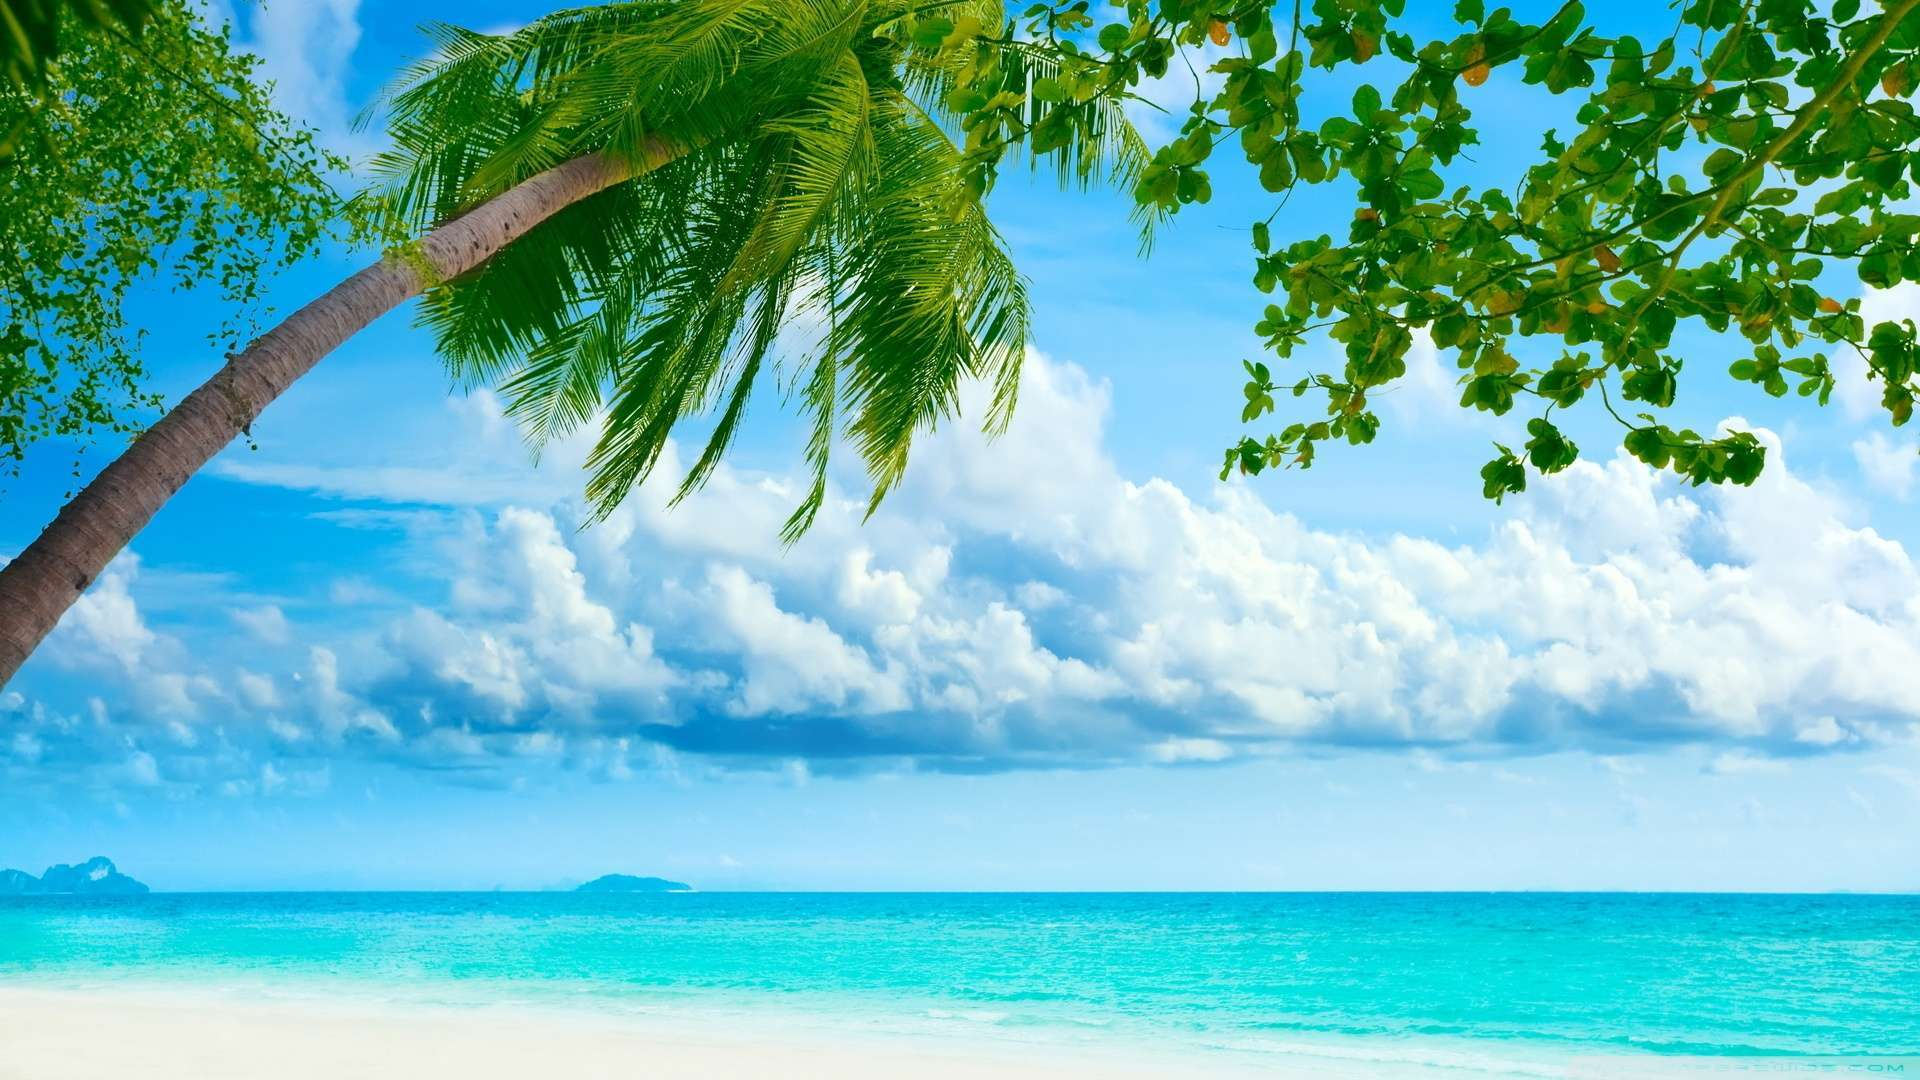 hdr wallpapers 1080p tropical - photo #1